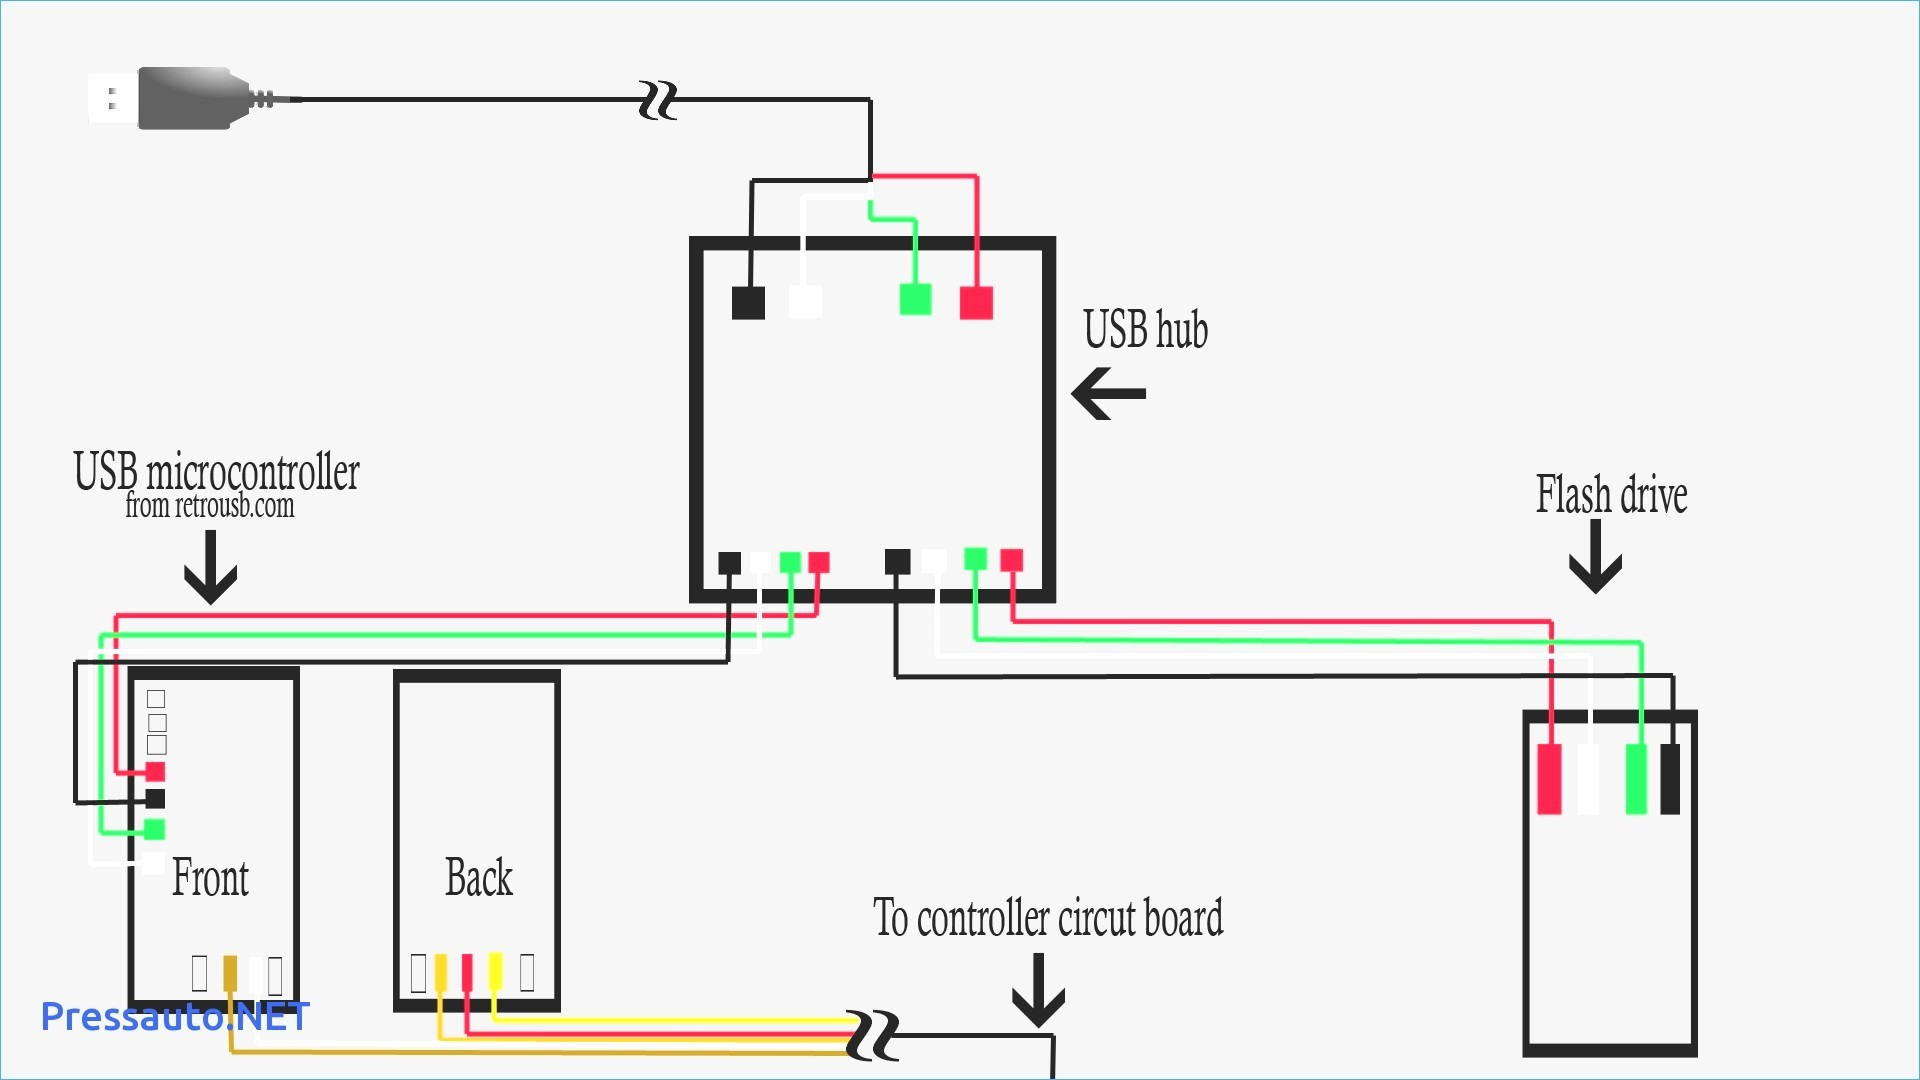 hight resolution of sata usb cable diagram block and schematic diagrams u2022 rj45 to usb diagram sata to